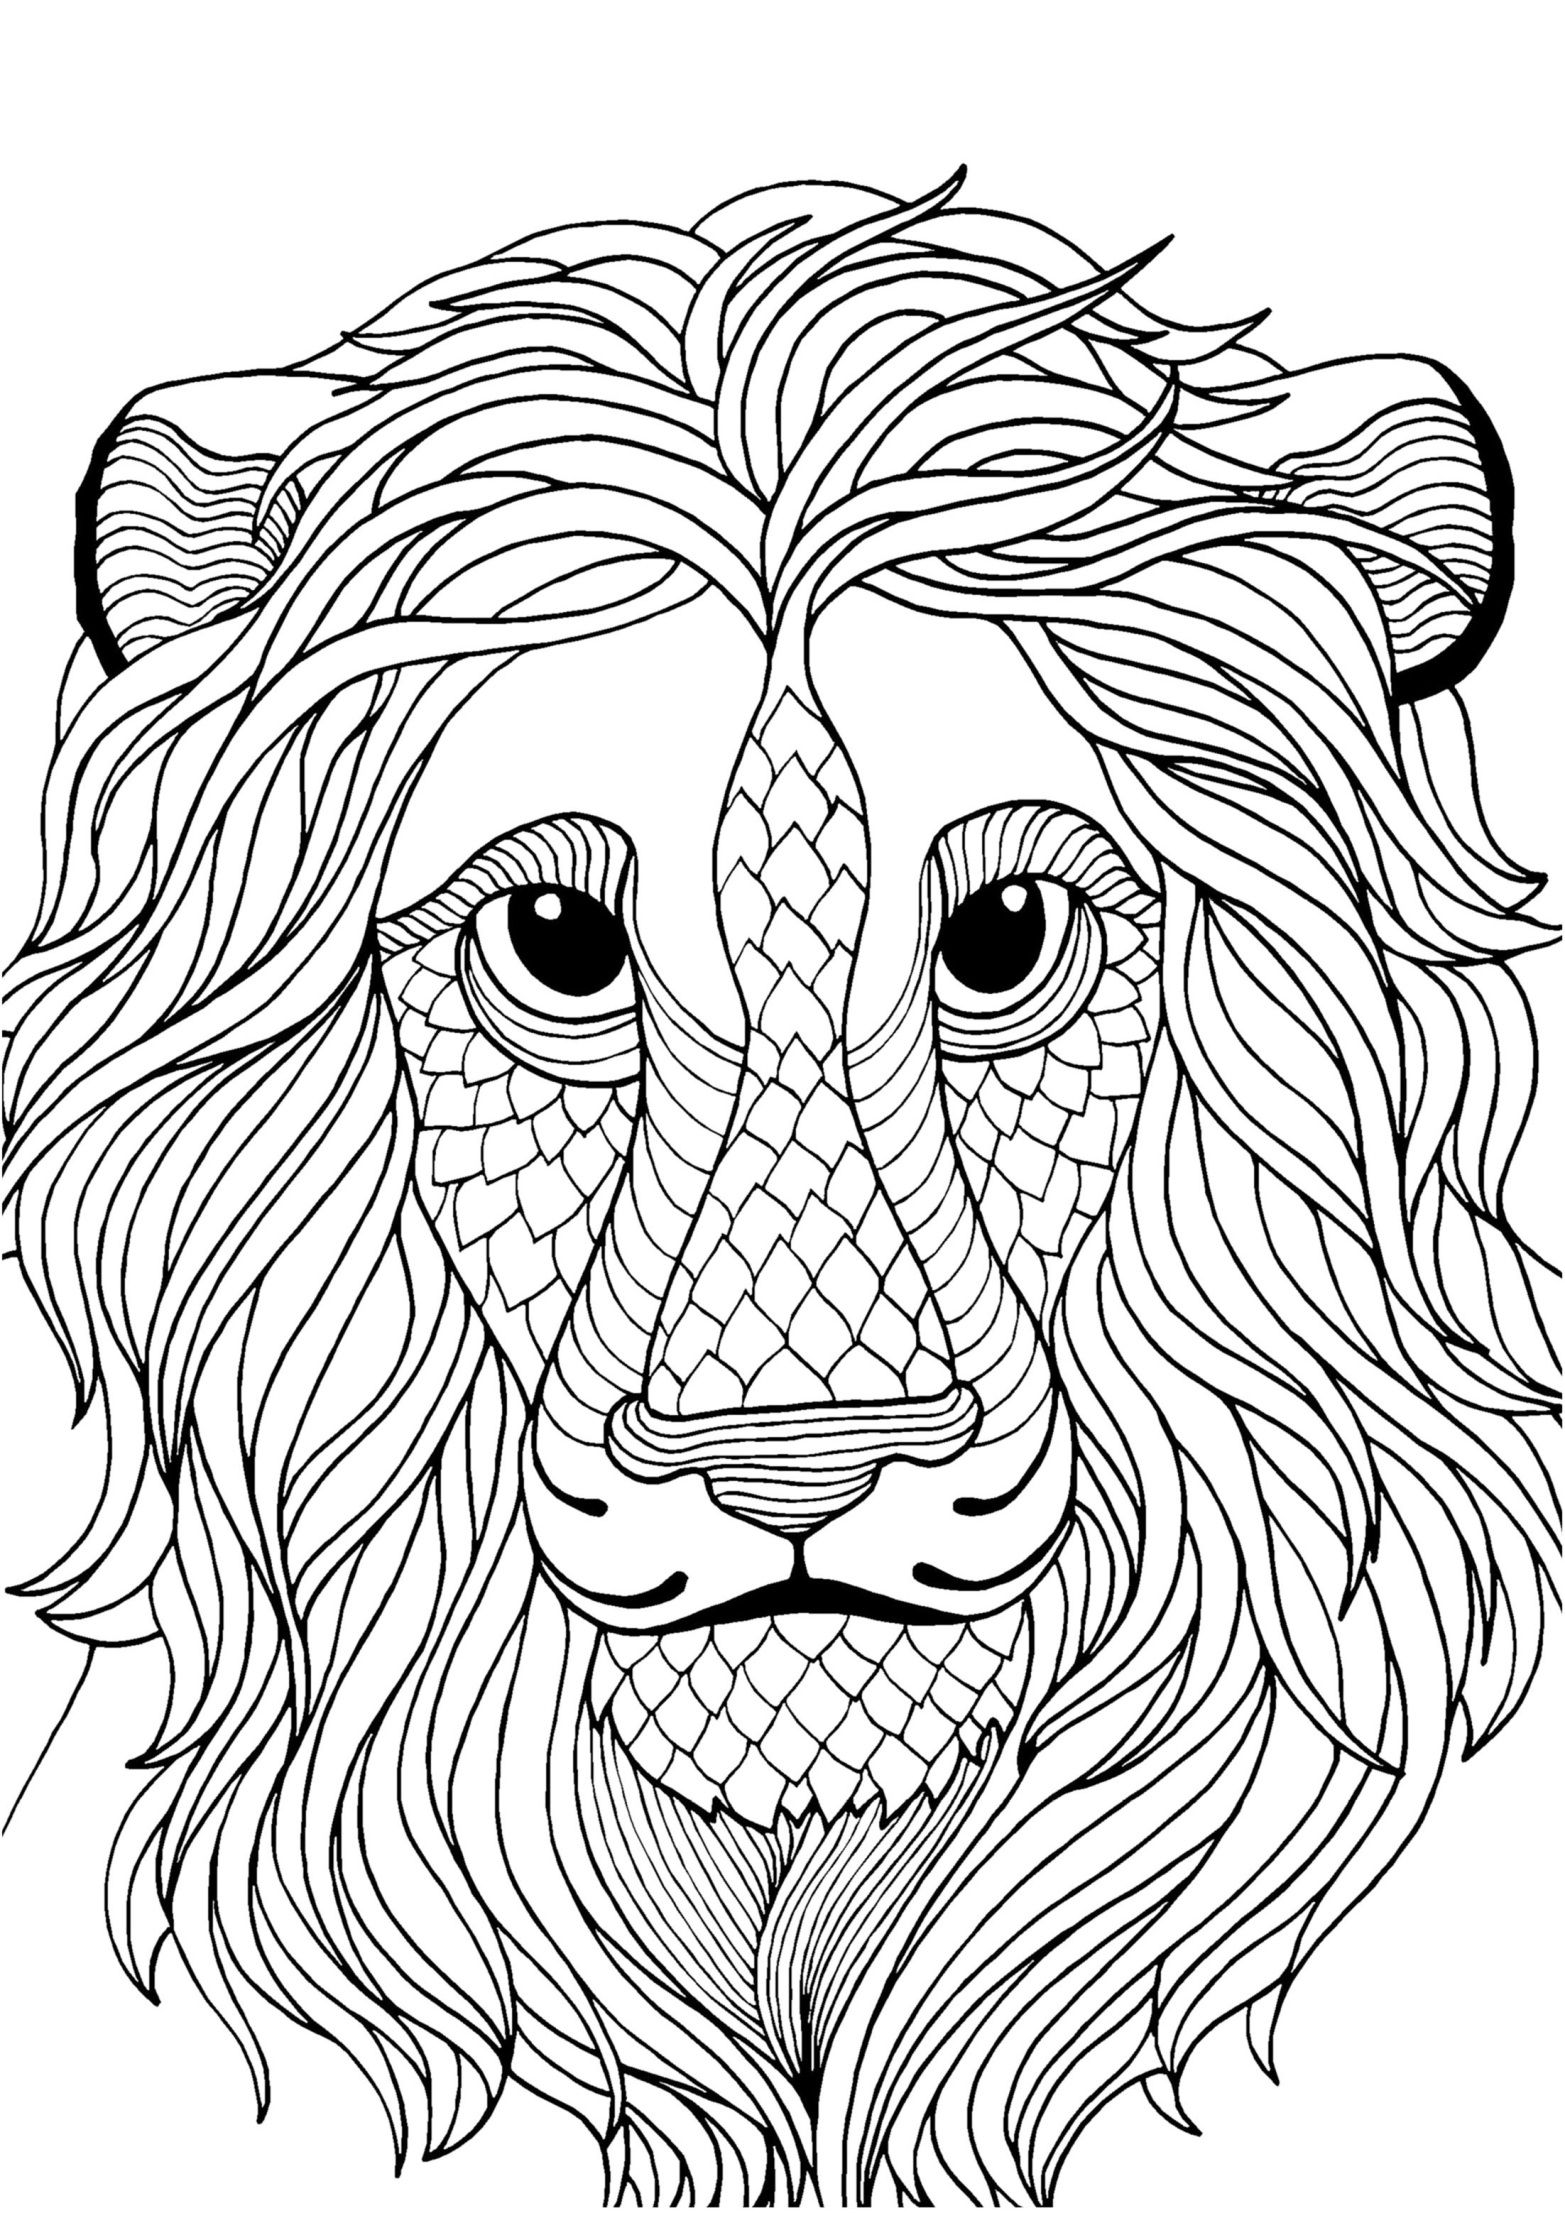 Lion Adult Colouring Page Colouring In Sheets Art Craft